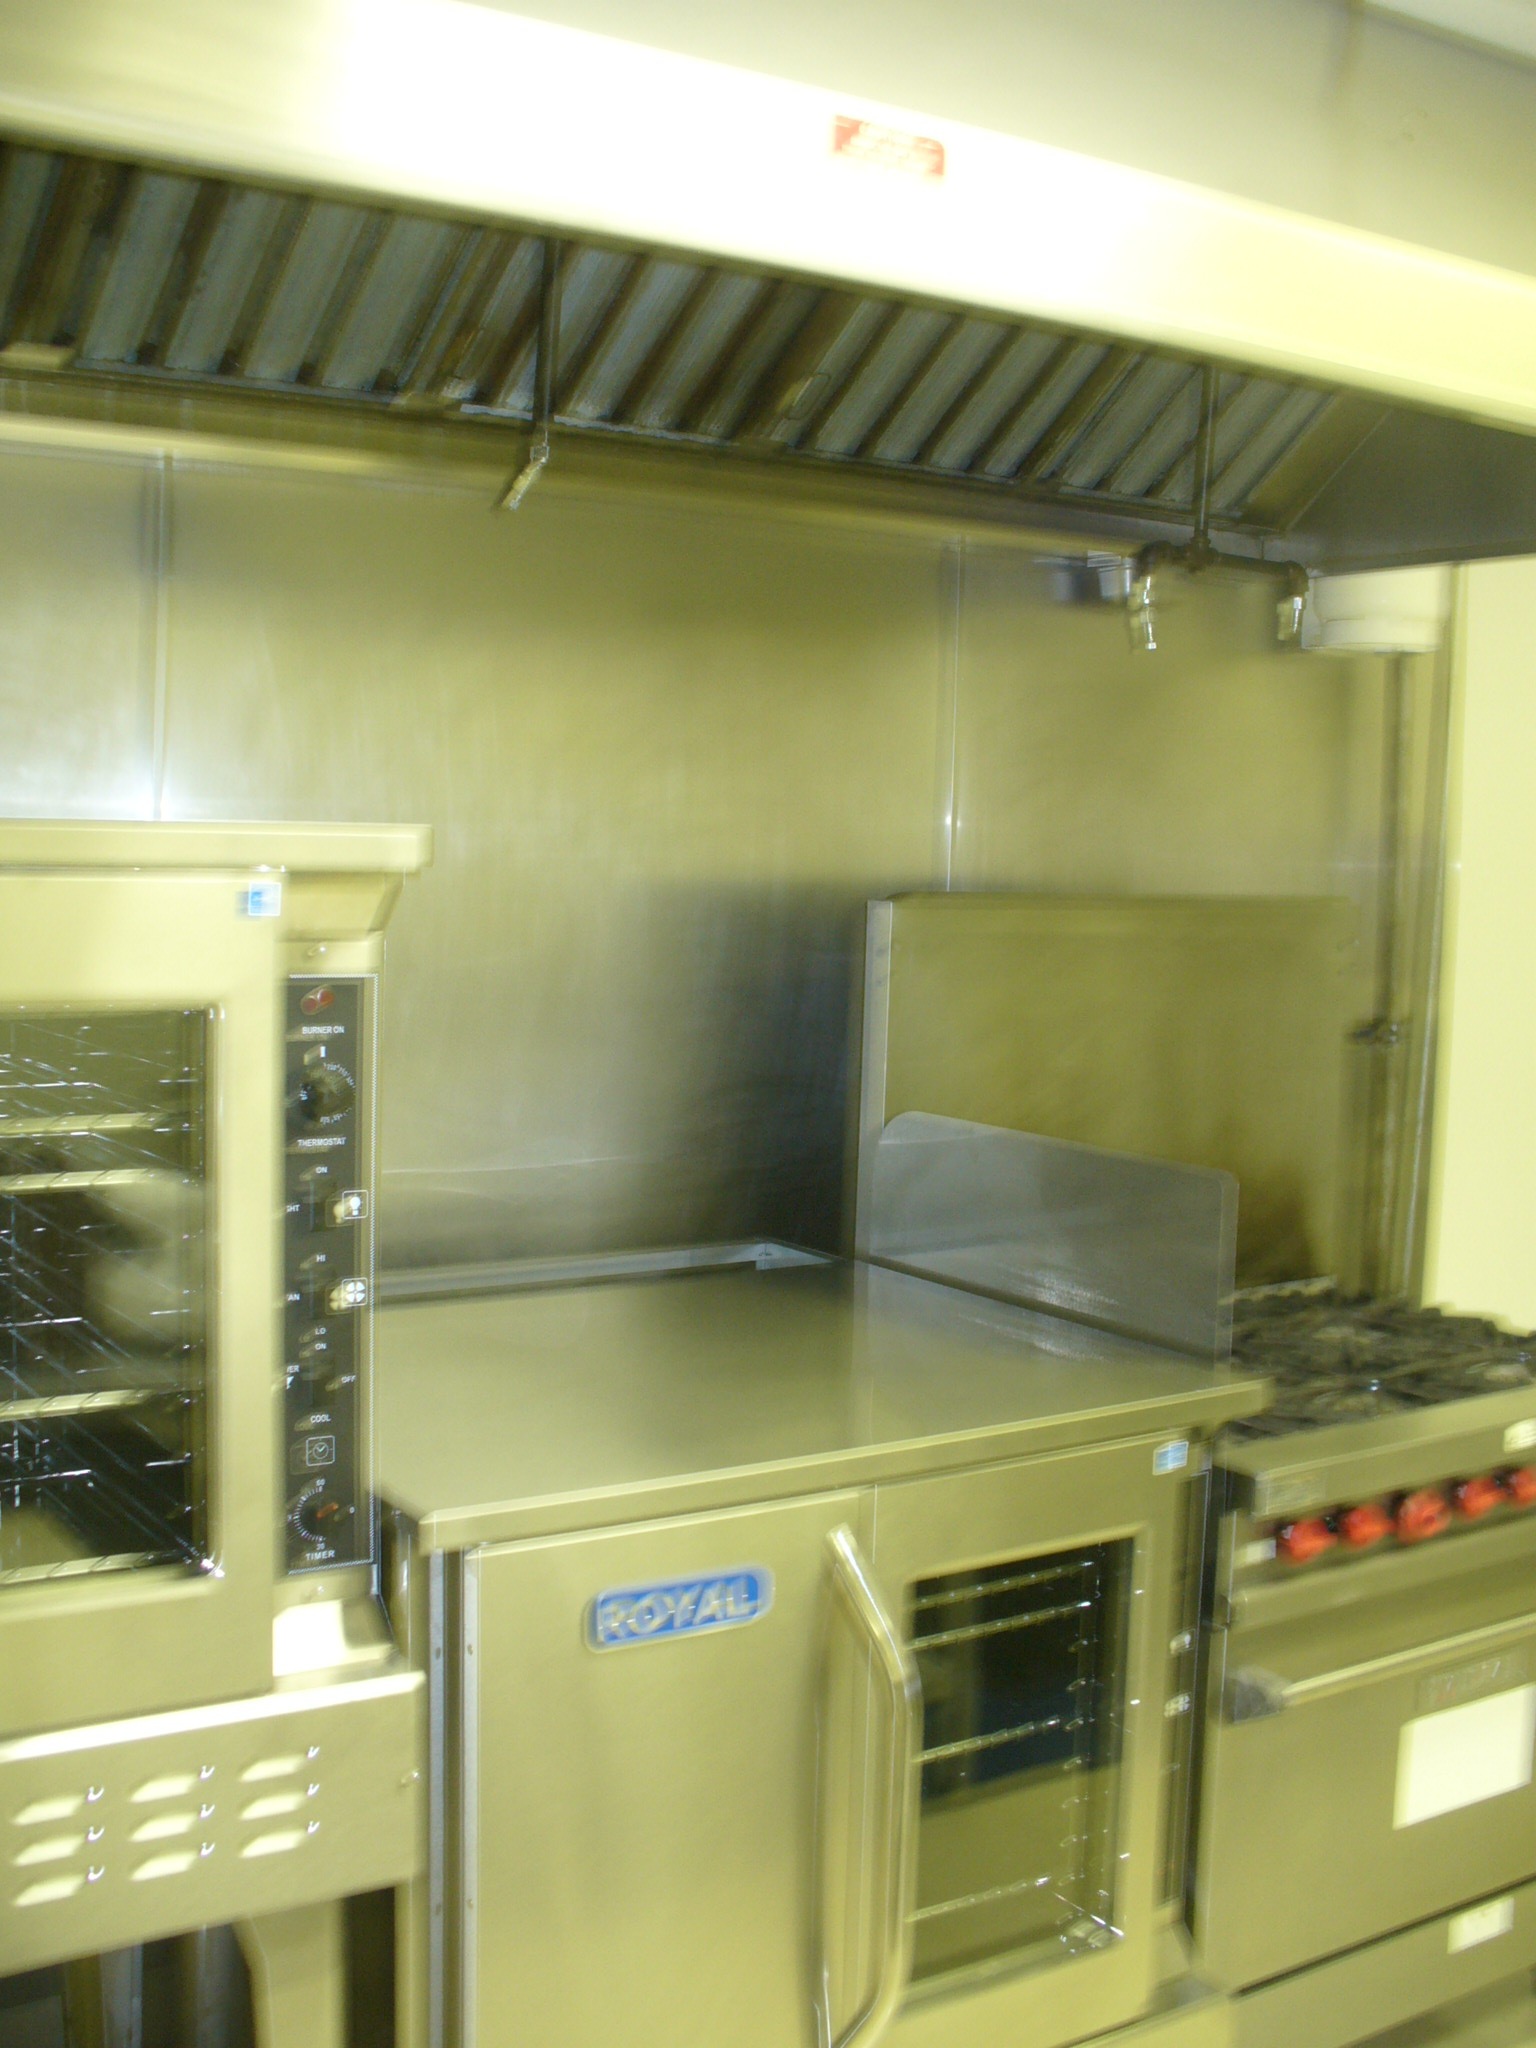 24 7 Shared Kitchen Serving Atlanta Area Offering Kitchen Space For Rent At Reasonable Rates